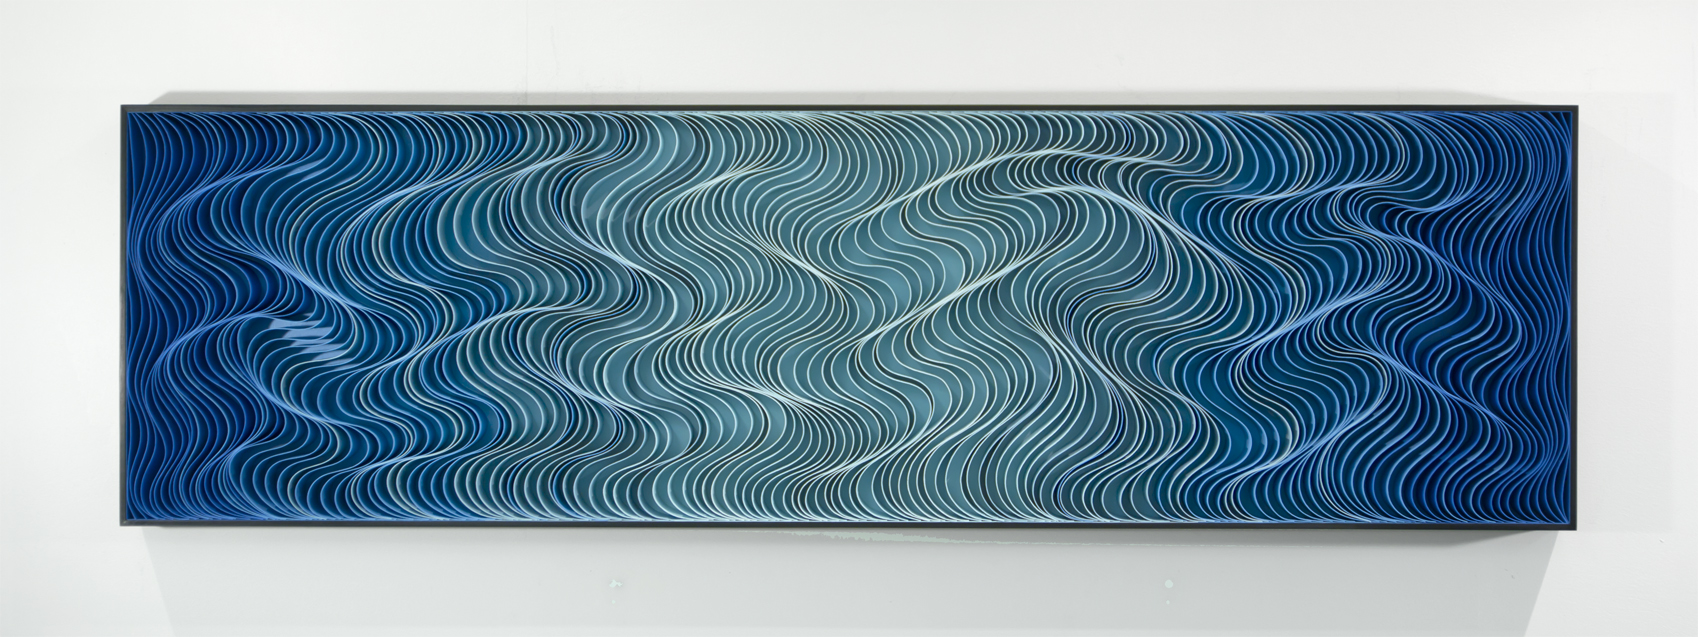 Stallman, modern, paper art, Original artwork, sculpture, abstract art, canvas on edge, fine art, blue, ocean, water, coastal art, seattle, jason hallman, stephen stum, blue,ocean, turquoise, Caribbean, stallman, ocean art, jason hallman, stephen stum, red, orange, warm tone